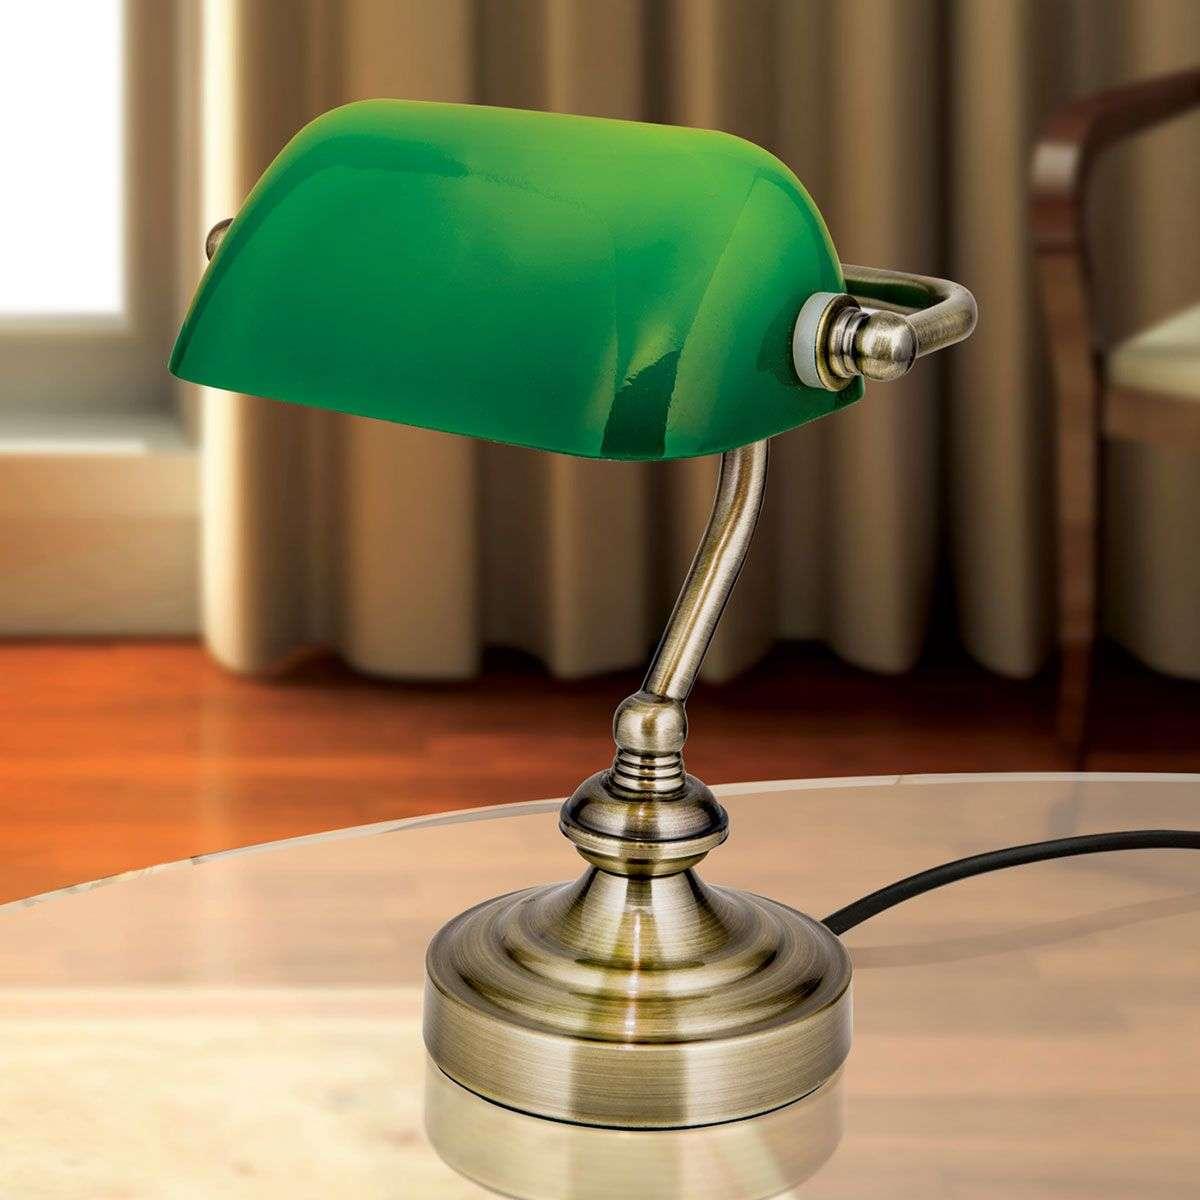 Zora bankers table lamp green glass lampshade lights zora bankers table lamp green glass lampshade 7255360 31 mozeypictures Gallery